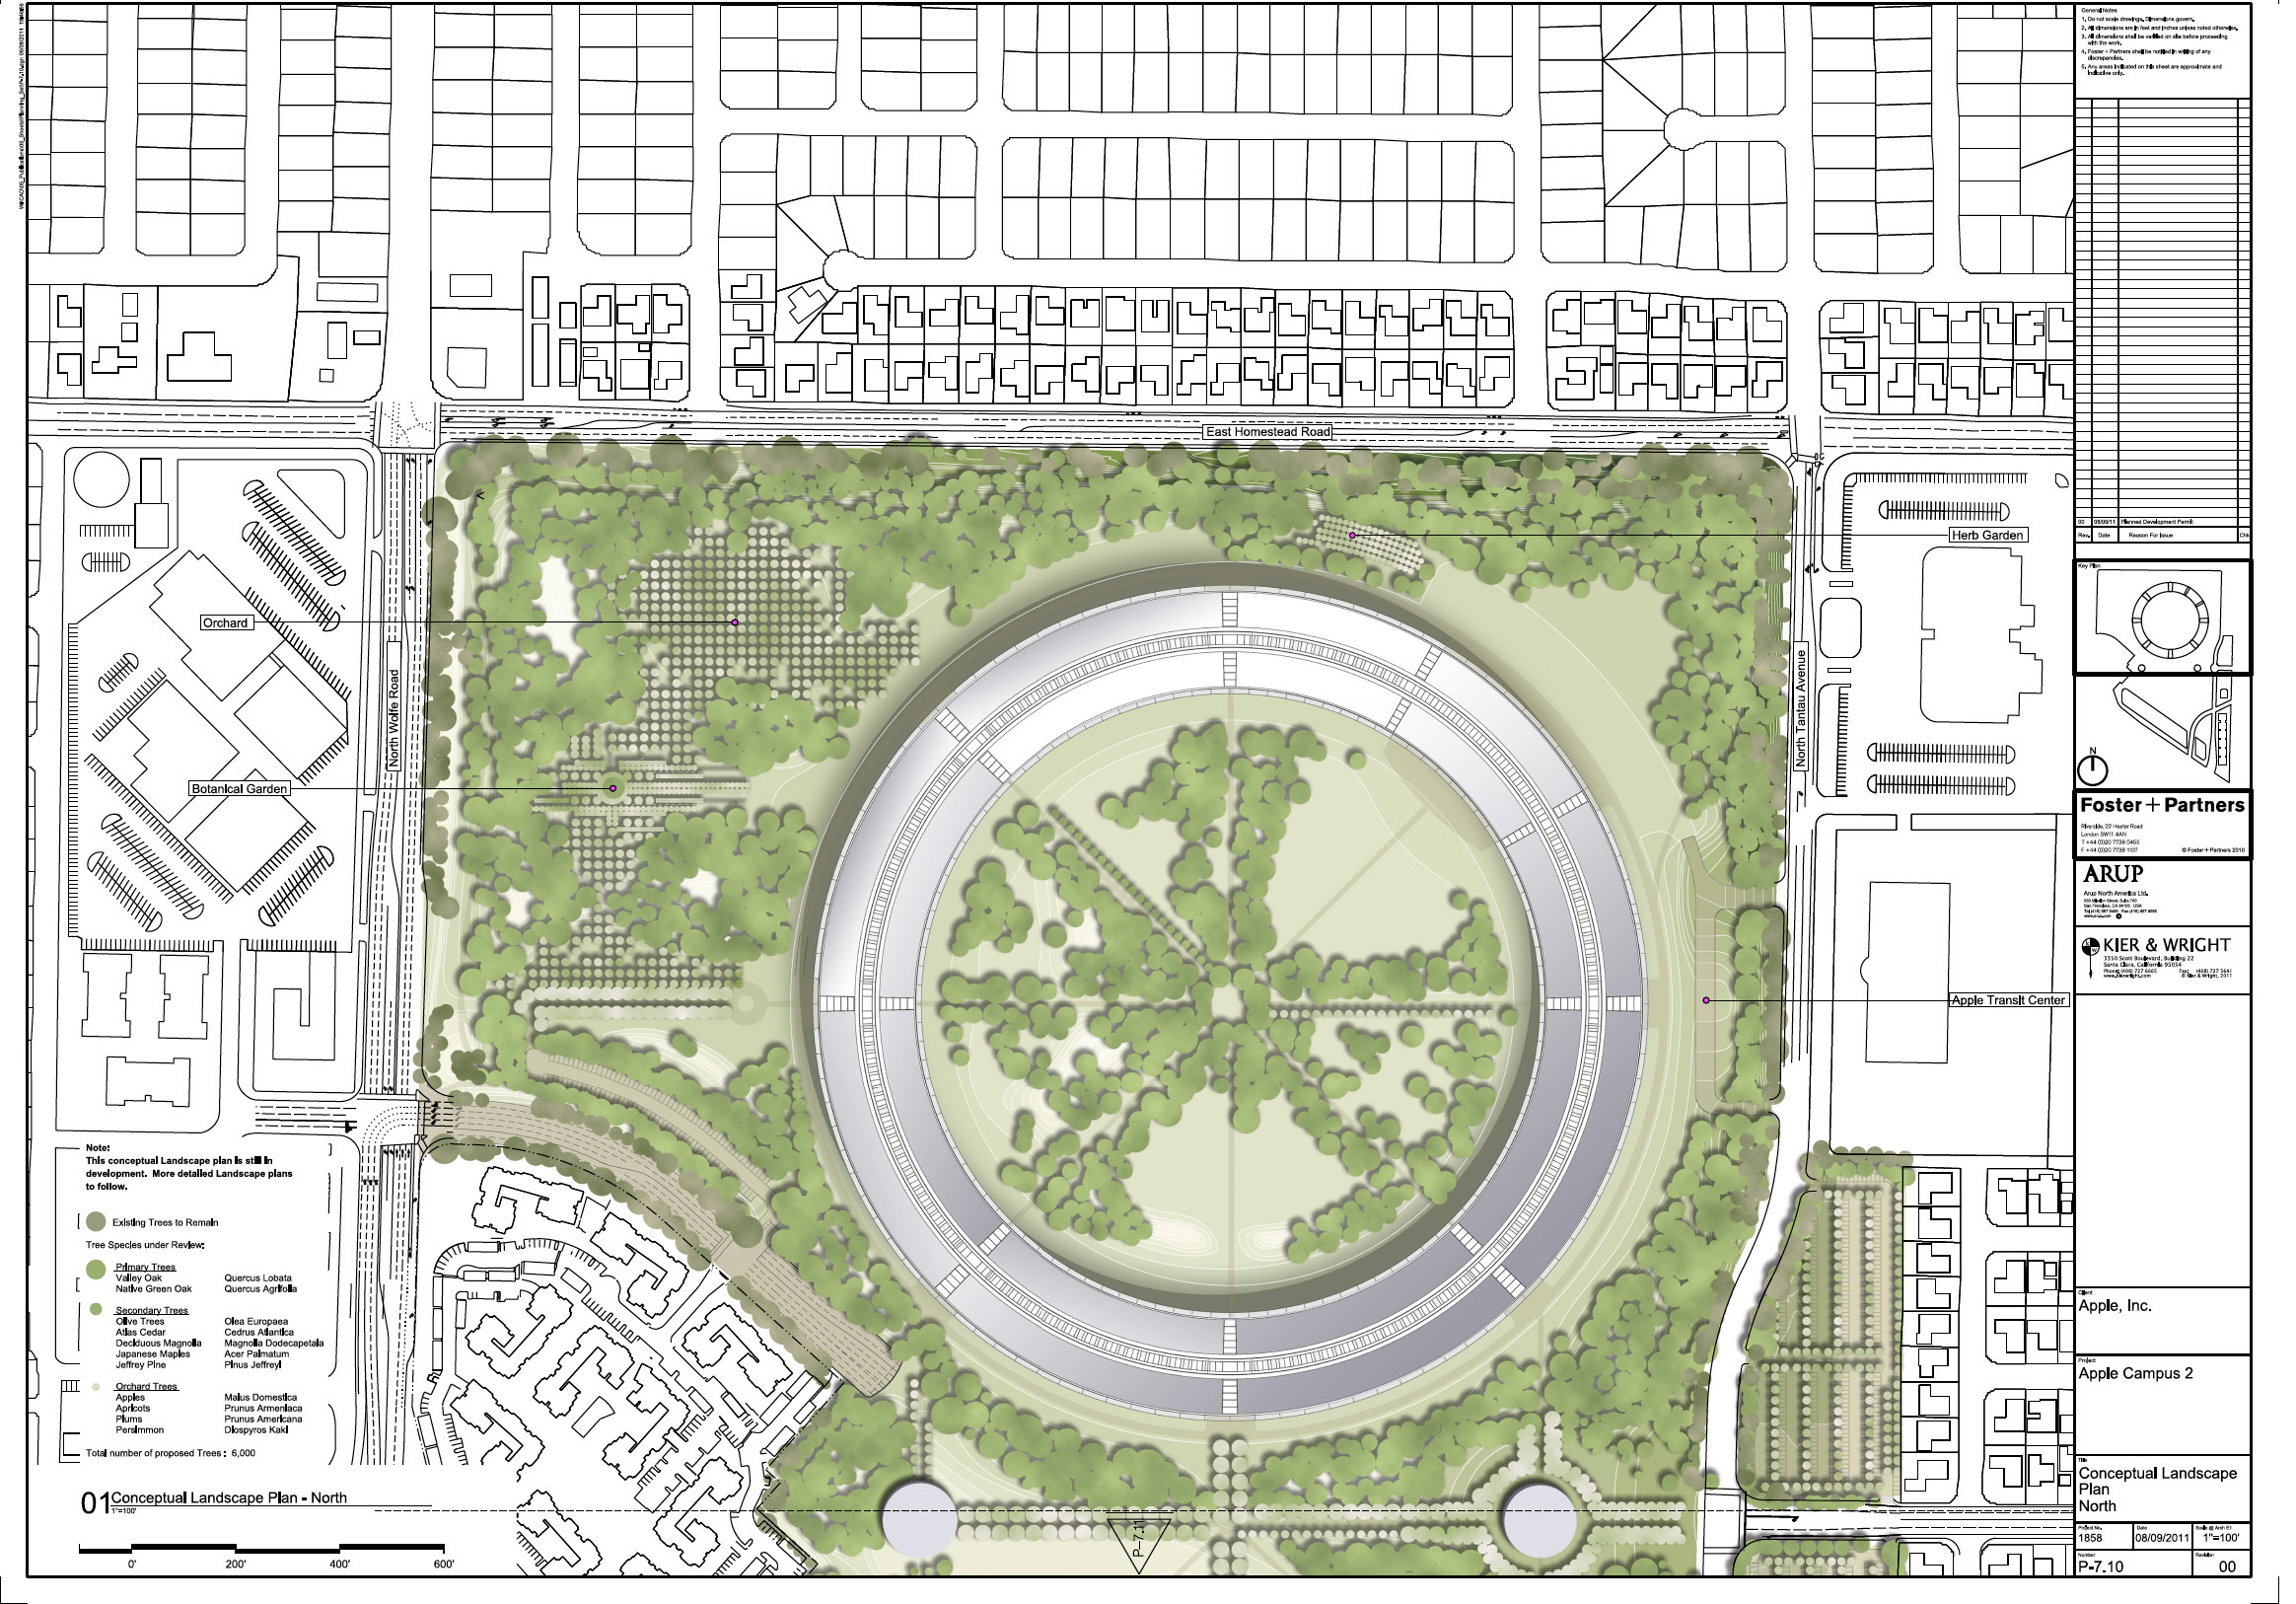 Site_Plan-Landscaping_Apple_Campus 2